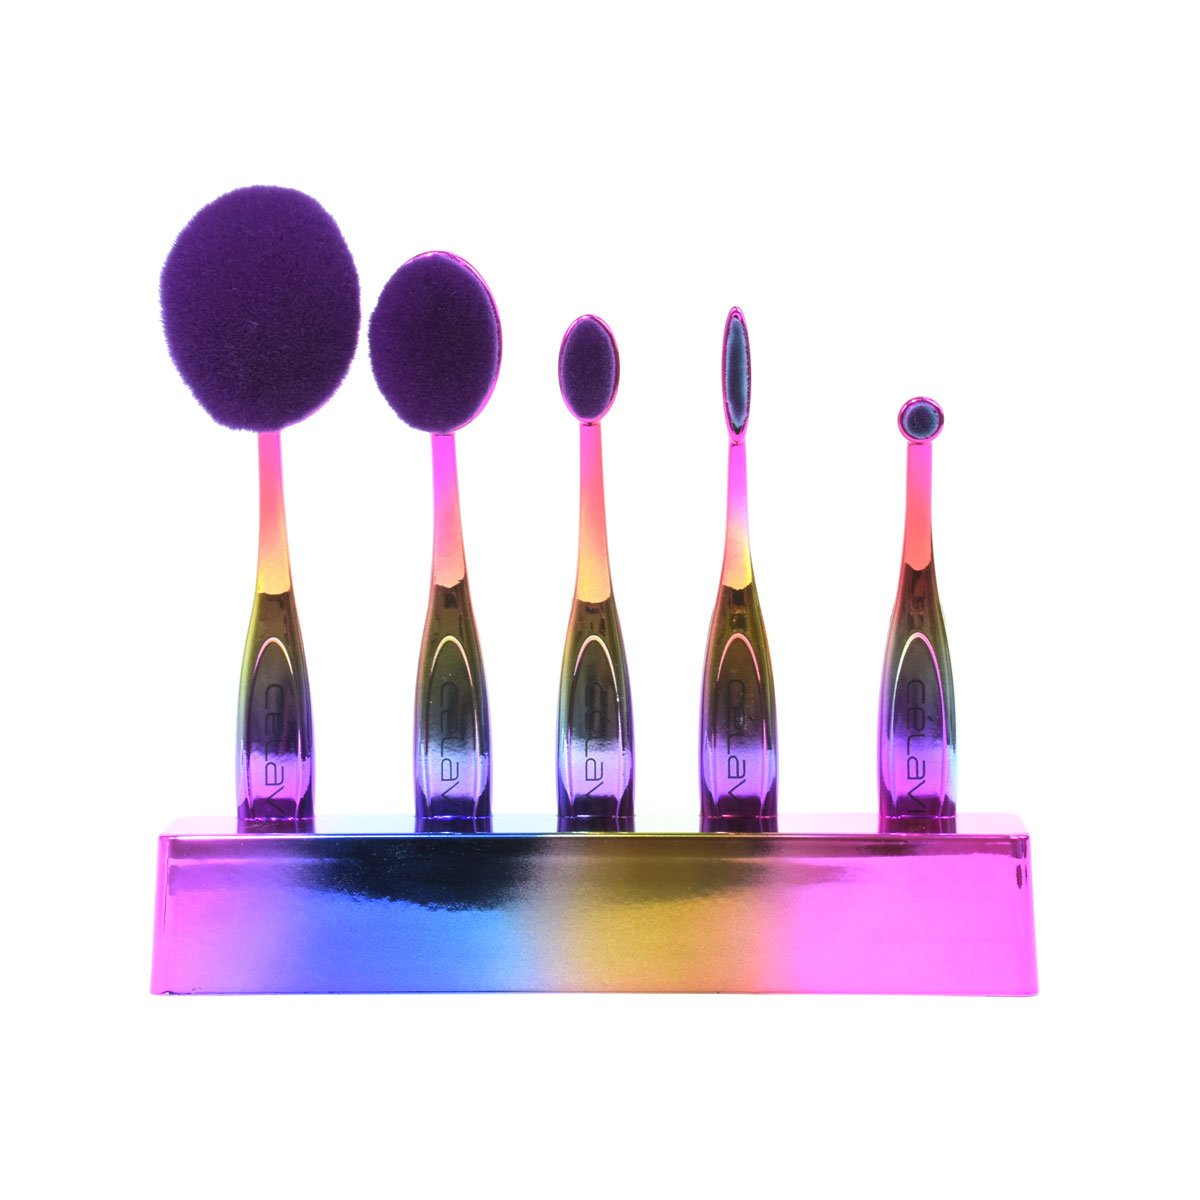 Celavi Oval Makeup Brush Professional Cosmetic Tools for Face, Foundation, Creams, Liquids, Moisturizer, Powder, Blush, Concealer, Contour-Beauty-Celavi Cosmetics-5 Brush Set-Rainbow-Celavi Cosmetics